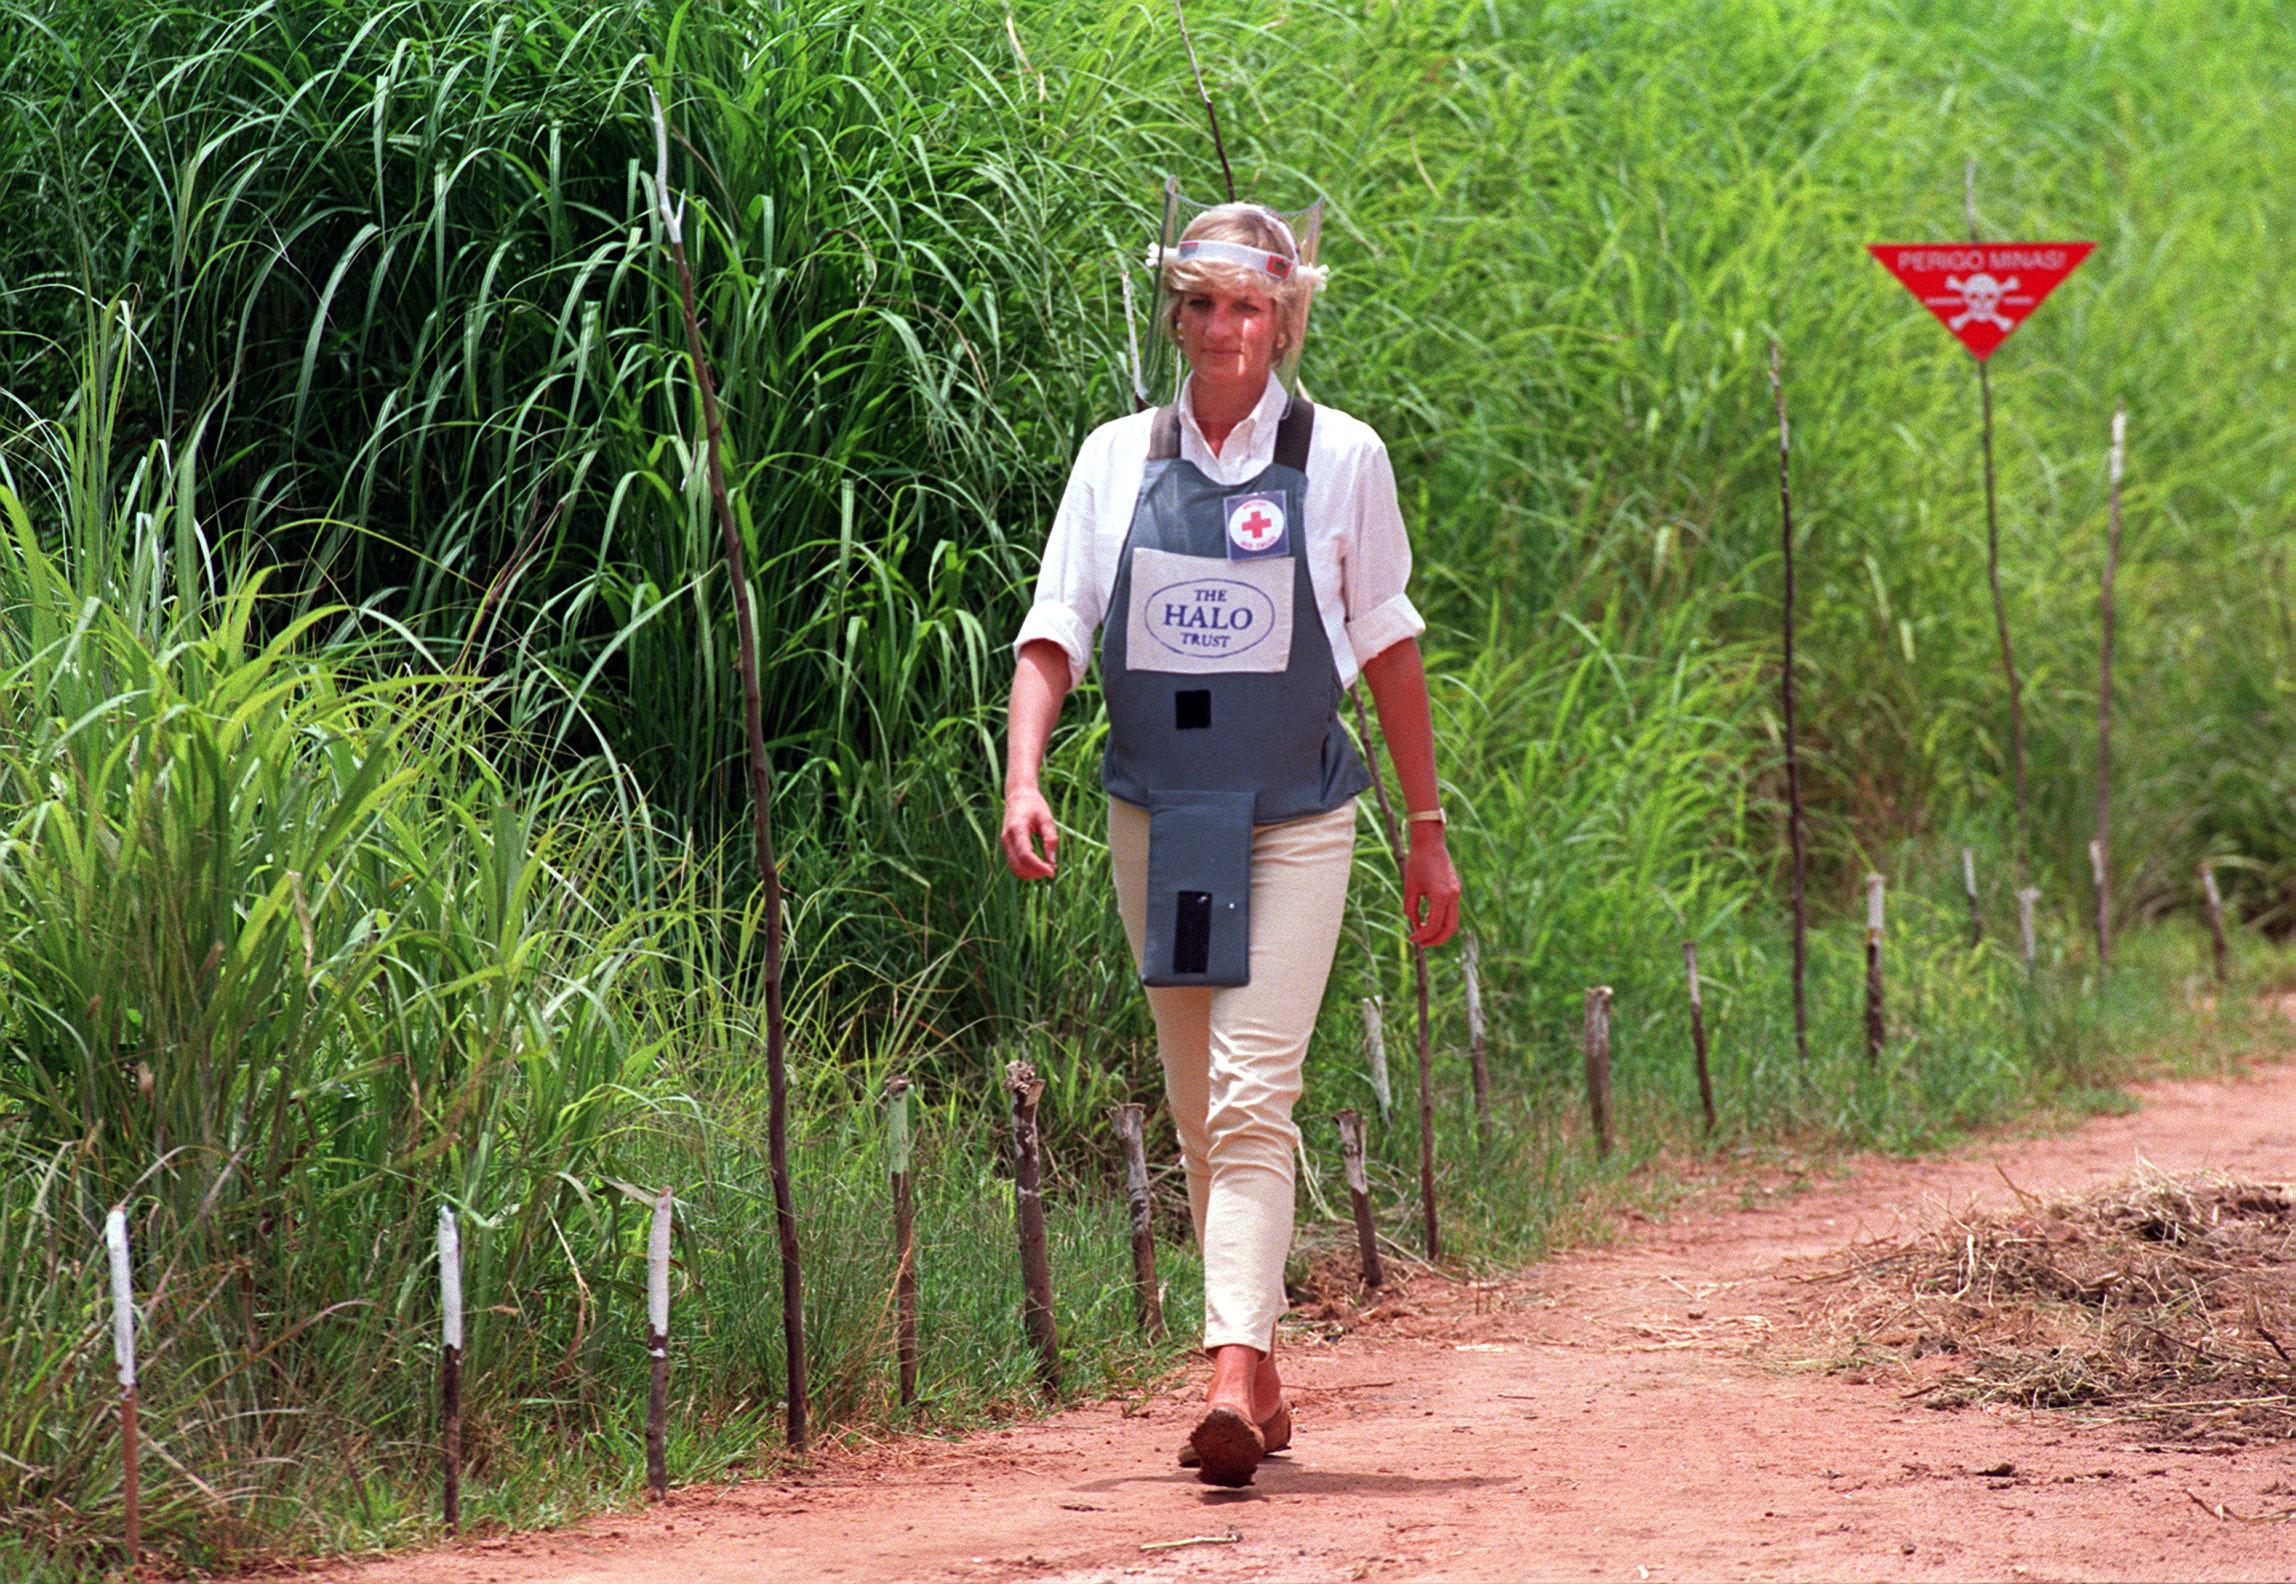 PA NEWS : 15/1/97 : DIANA, PRINCESS OF WALES, WEARS A PROTECTIVE JACKET AS SHE WALKS NEXT TO THE EDGE OF A MINEFIELD IN ANGOLA, DURING HER VISIT TO SEE THE WORK OF THE BRITISH RED CROSS. (PHOTO BY JOHN STILLWELL ). 11/07/03 : The future of the Diana, Princess of Wales Memorial Fund set up after her death is under threat. It has frozen all its grants to beneficiaries and been forced to approach other charities in a bid to keep its own projects going. The fund s crisis follows a protracted legal battle with the US company, the Franklin Mint. In June 2000 the Memorial Fund lost a court battle in the US against the firm in which they failed to stop the company making products bearing the Princess s image. The battle led to a 4 million legal bill for the fund.